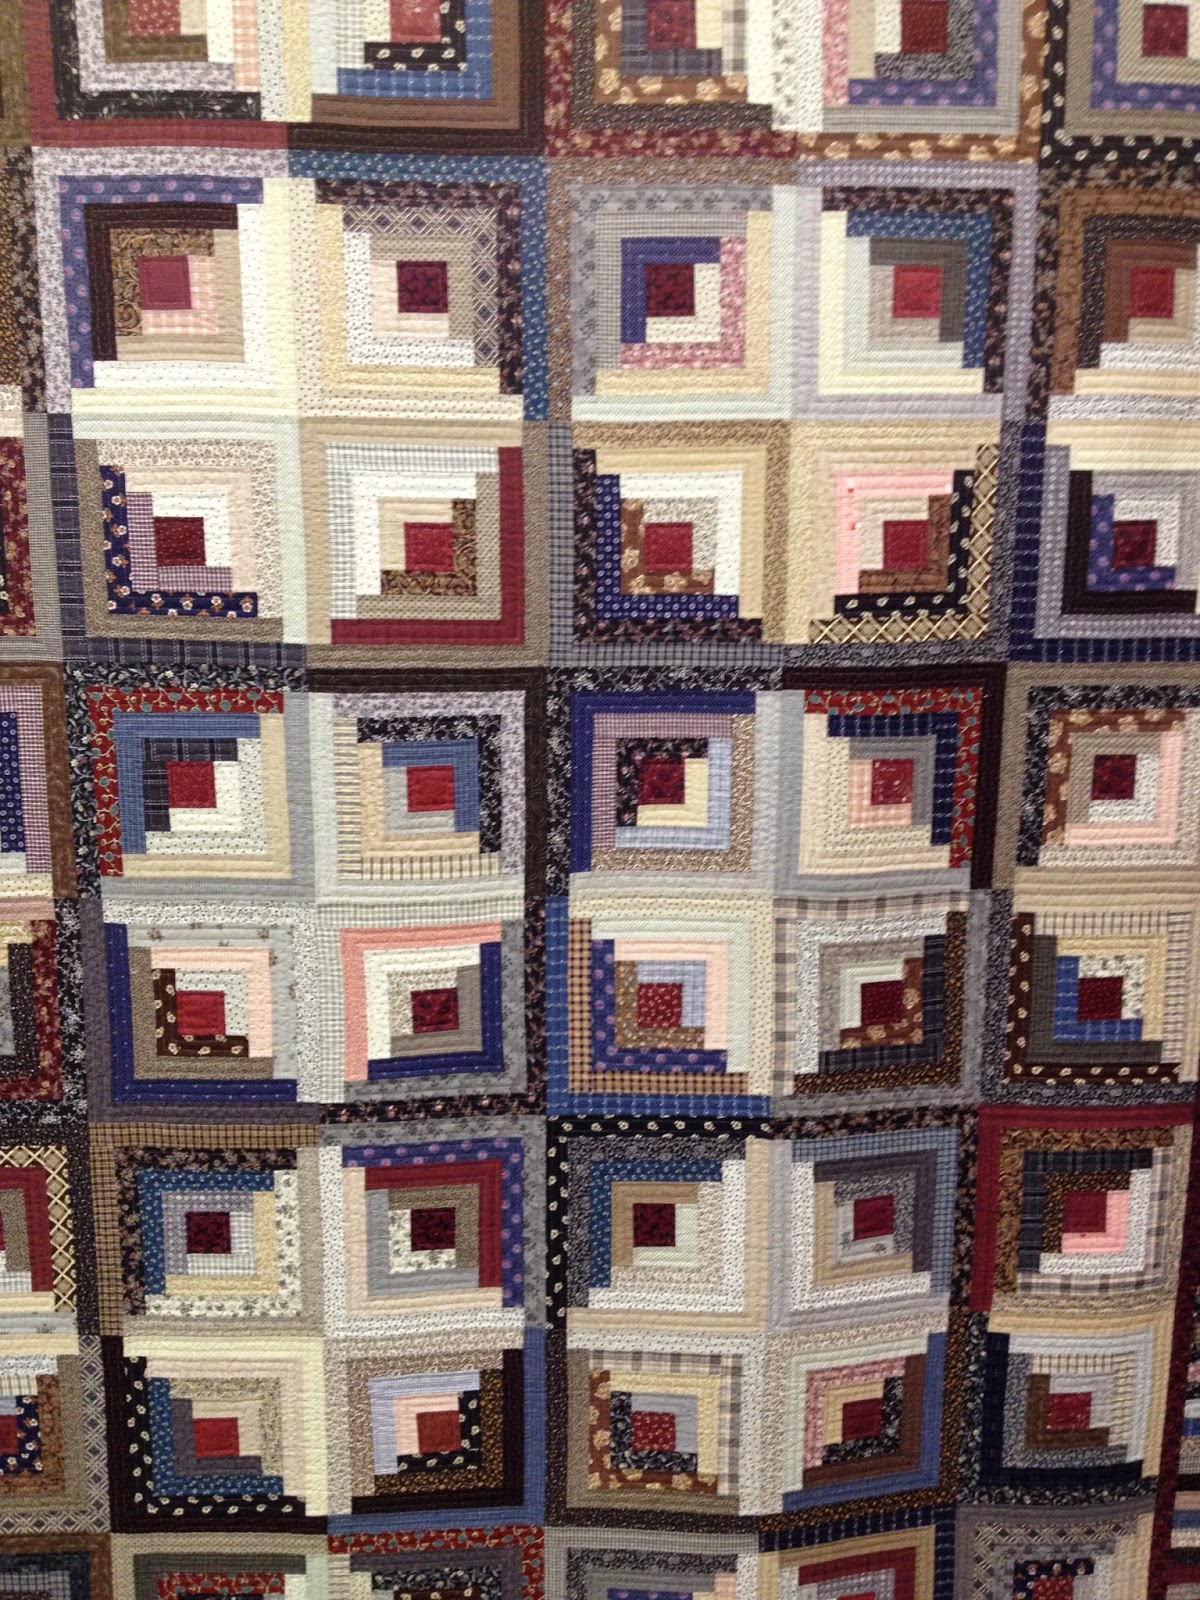 Small Quilts And Doll Quilts A Special Exhibit At The